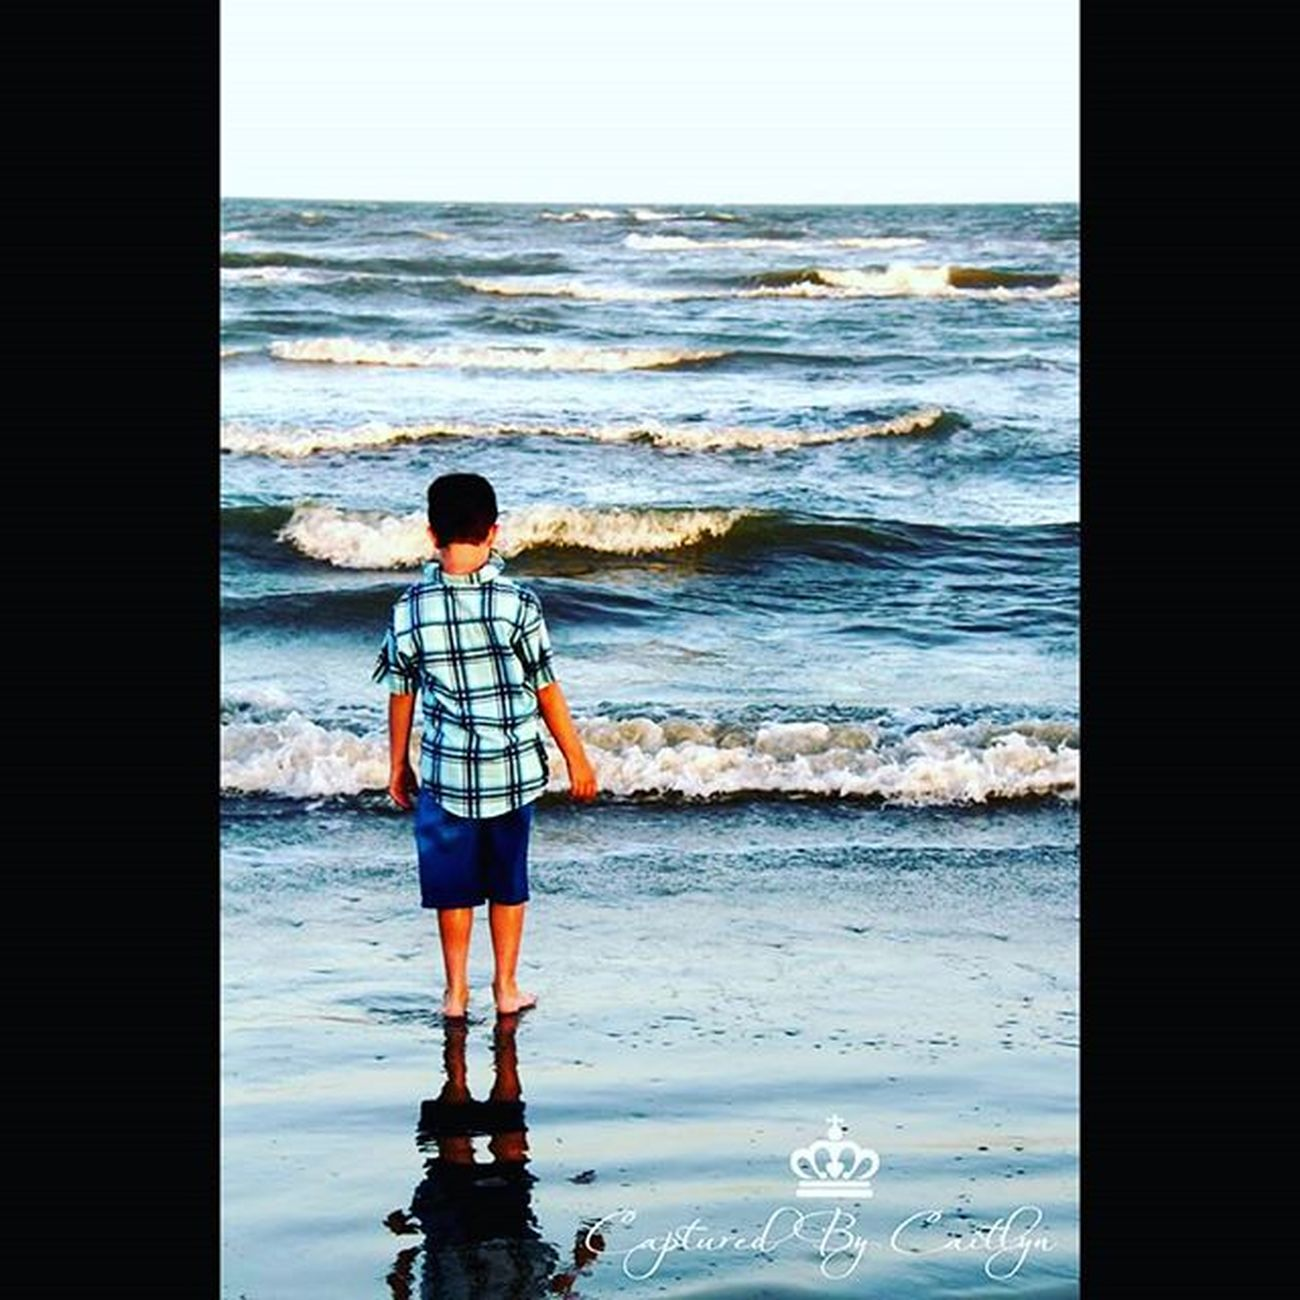 Beach photoshoot Photography Photographer Beach Capturedbycaitlyn Cousin Waves Follow Mylife Followme